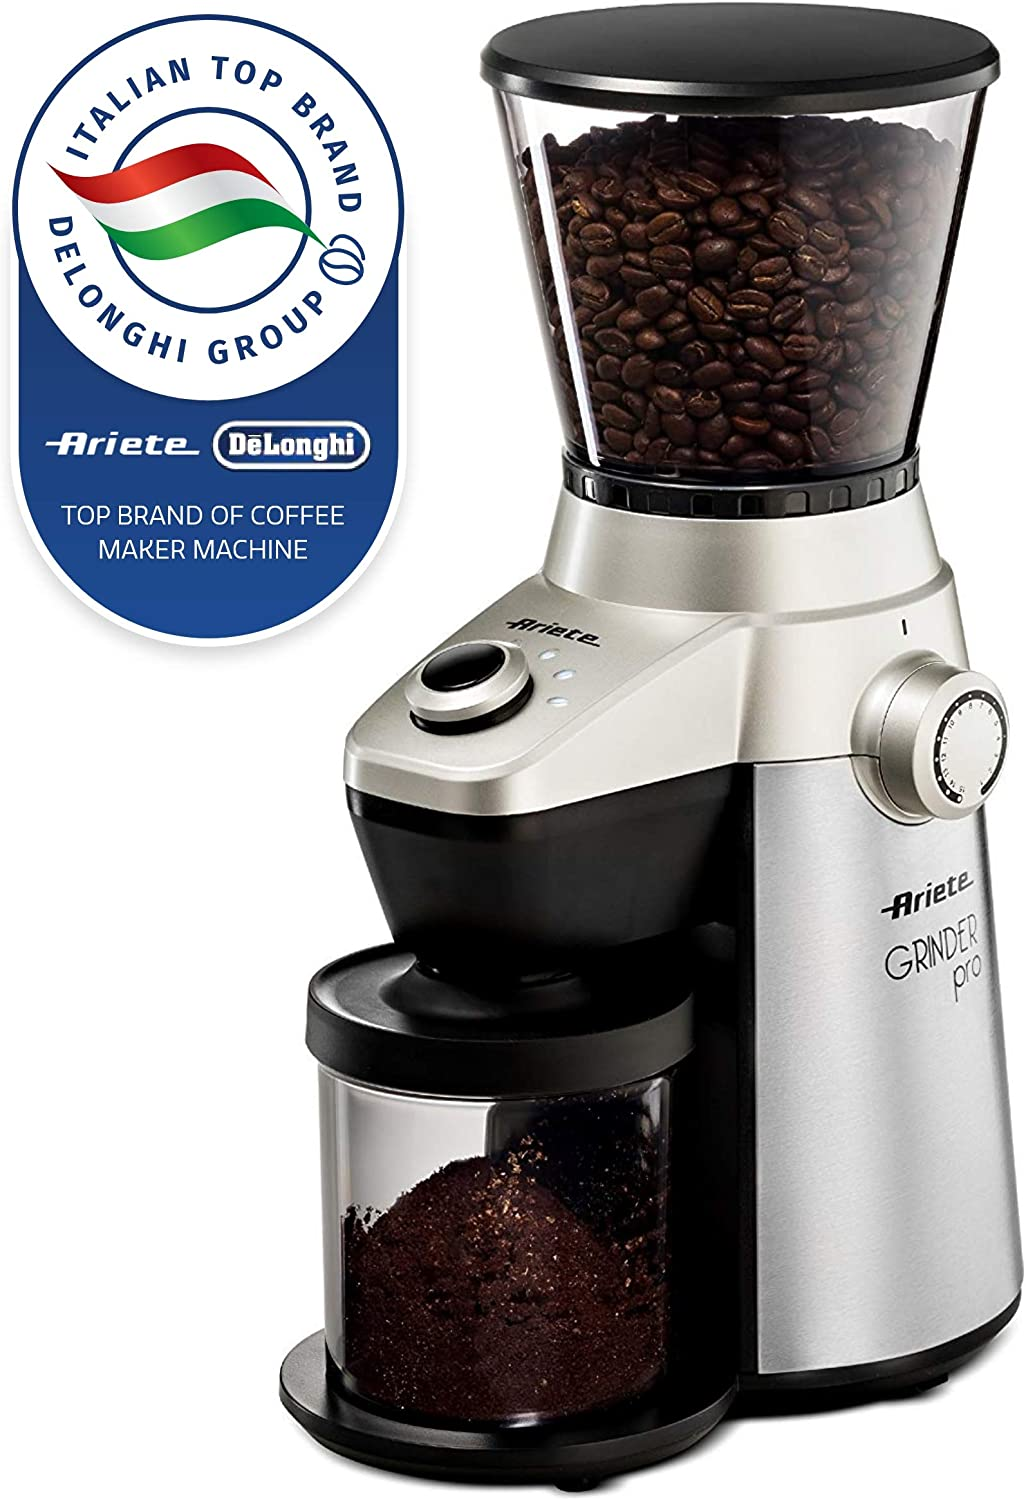 Ariete -Delonghi Electric Coffee Grinder – Professional Heavy Duty Stainless Steel, Conical Burr – Ultra Fine Grind, Adjustable Cup Size, 15 Fine – Coarse Grind Size Settings